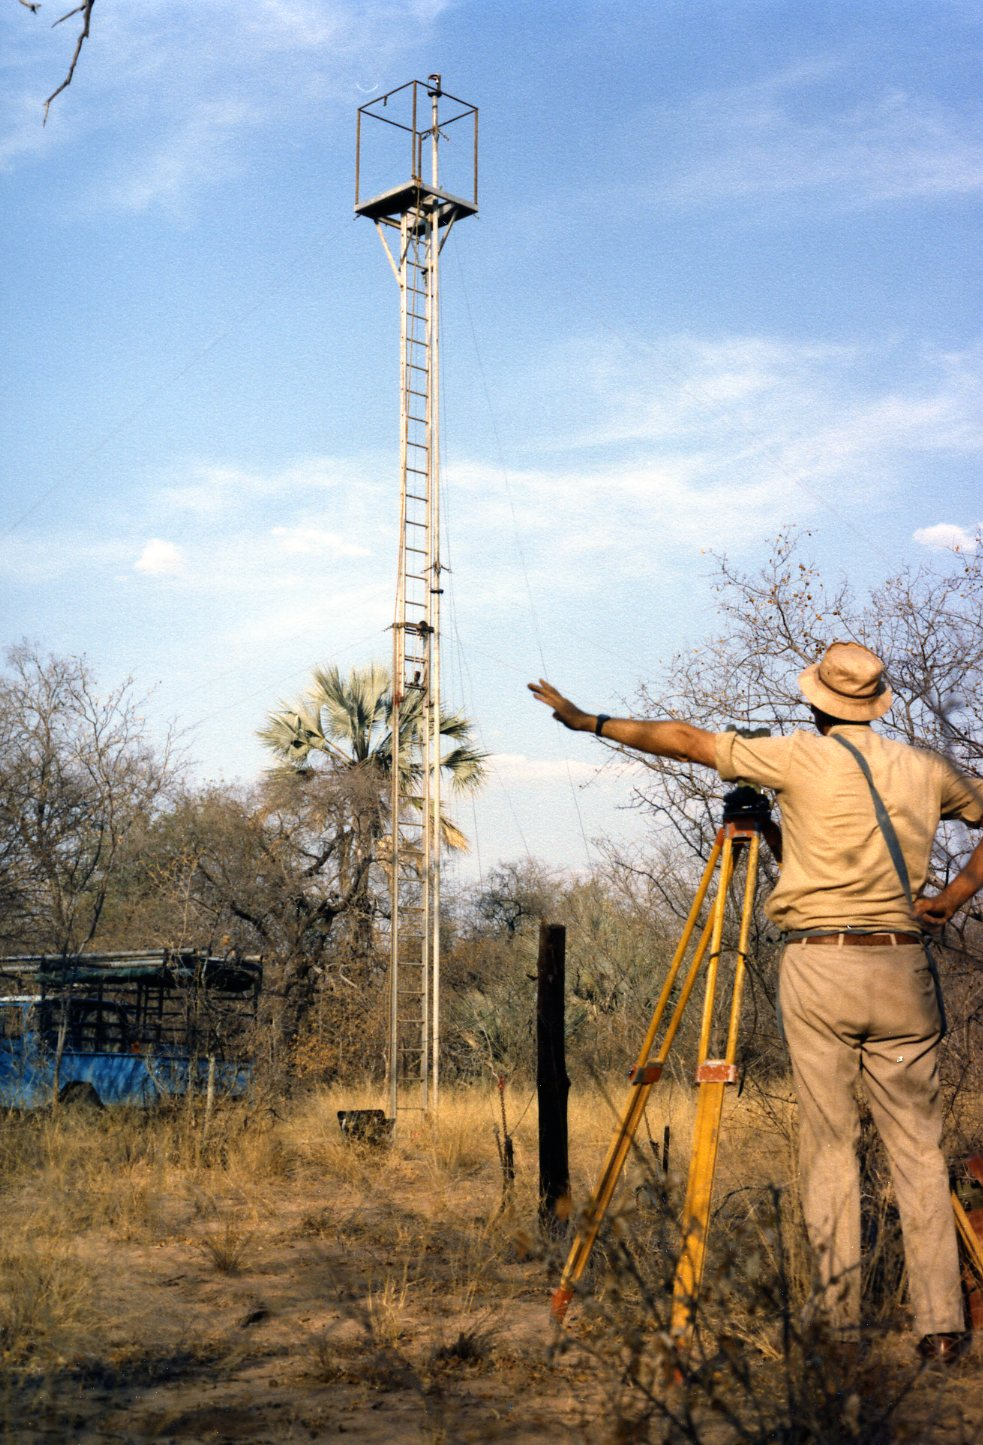 surveying in the Namibian bush in the 1980's